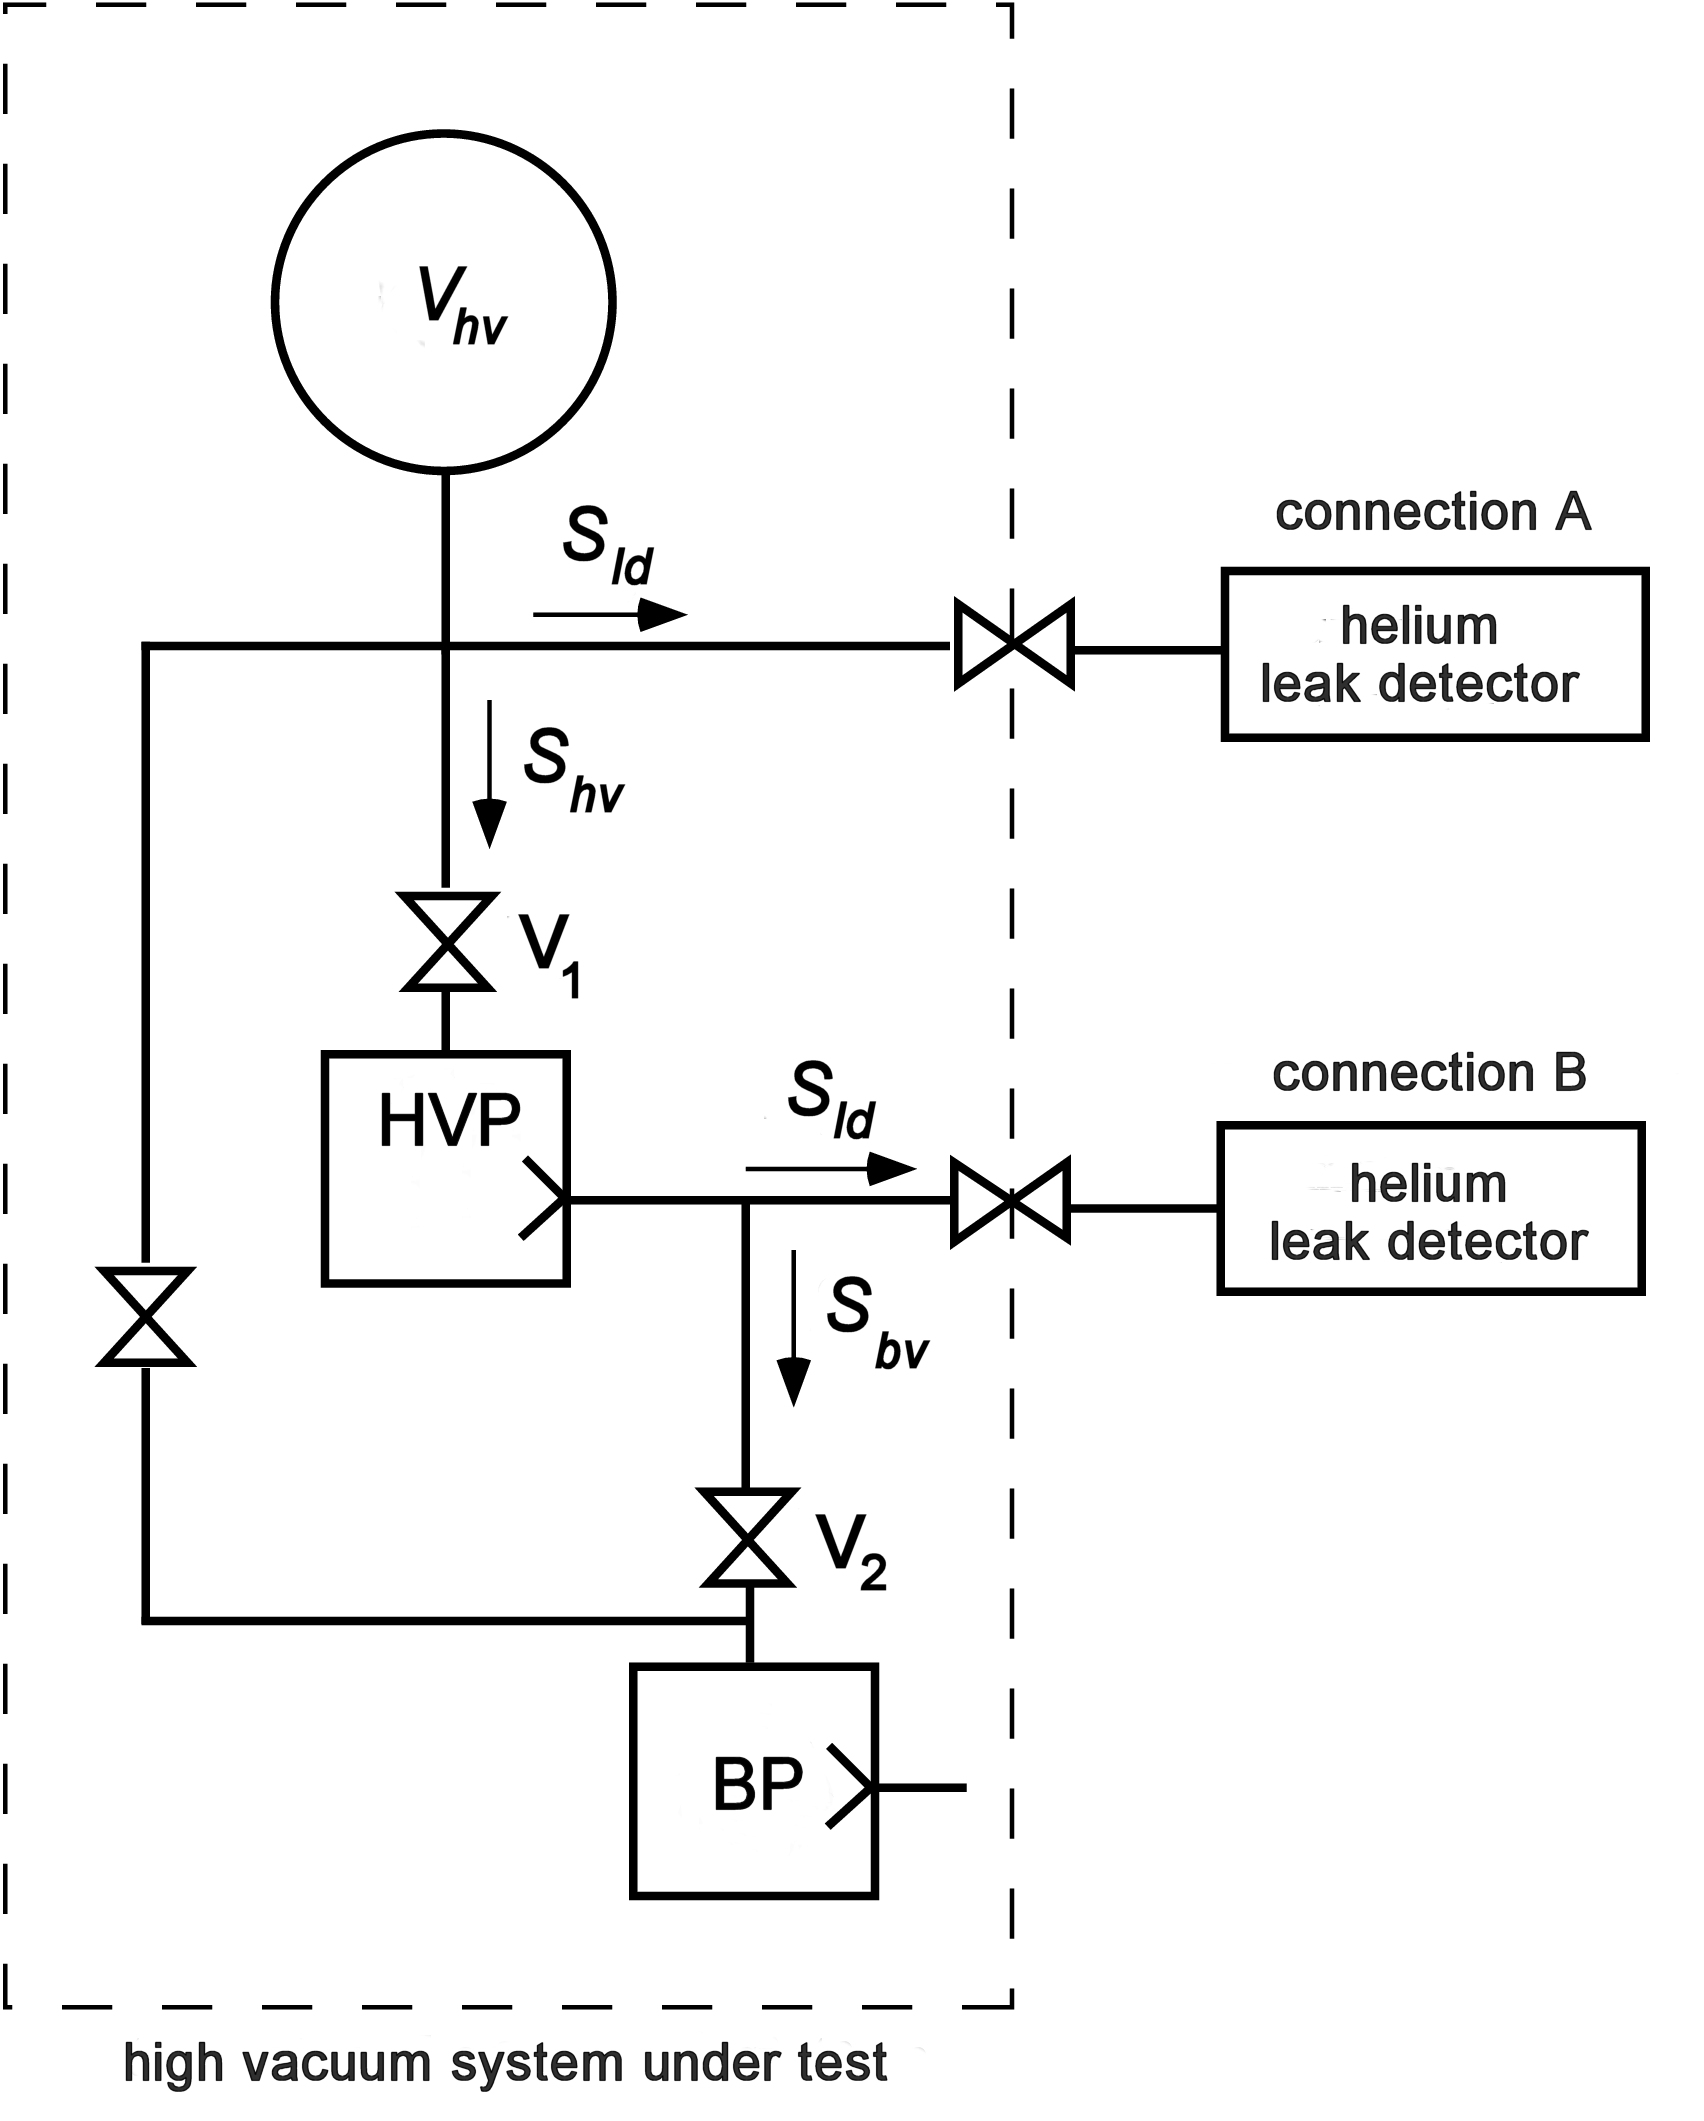 Leak detection - Helium leak detector connection options